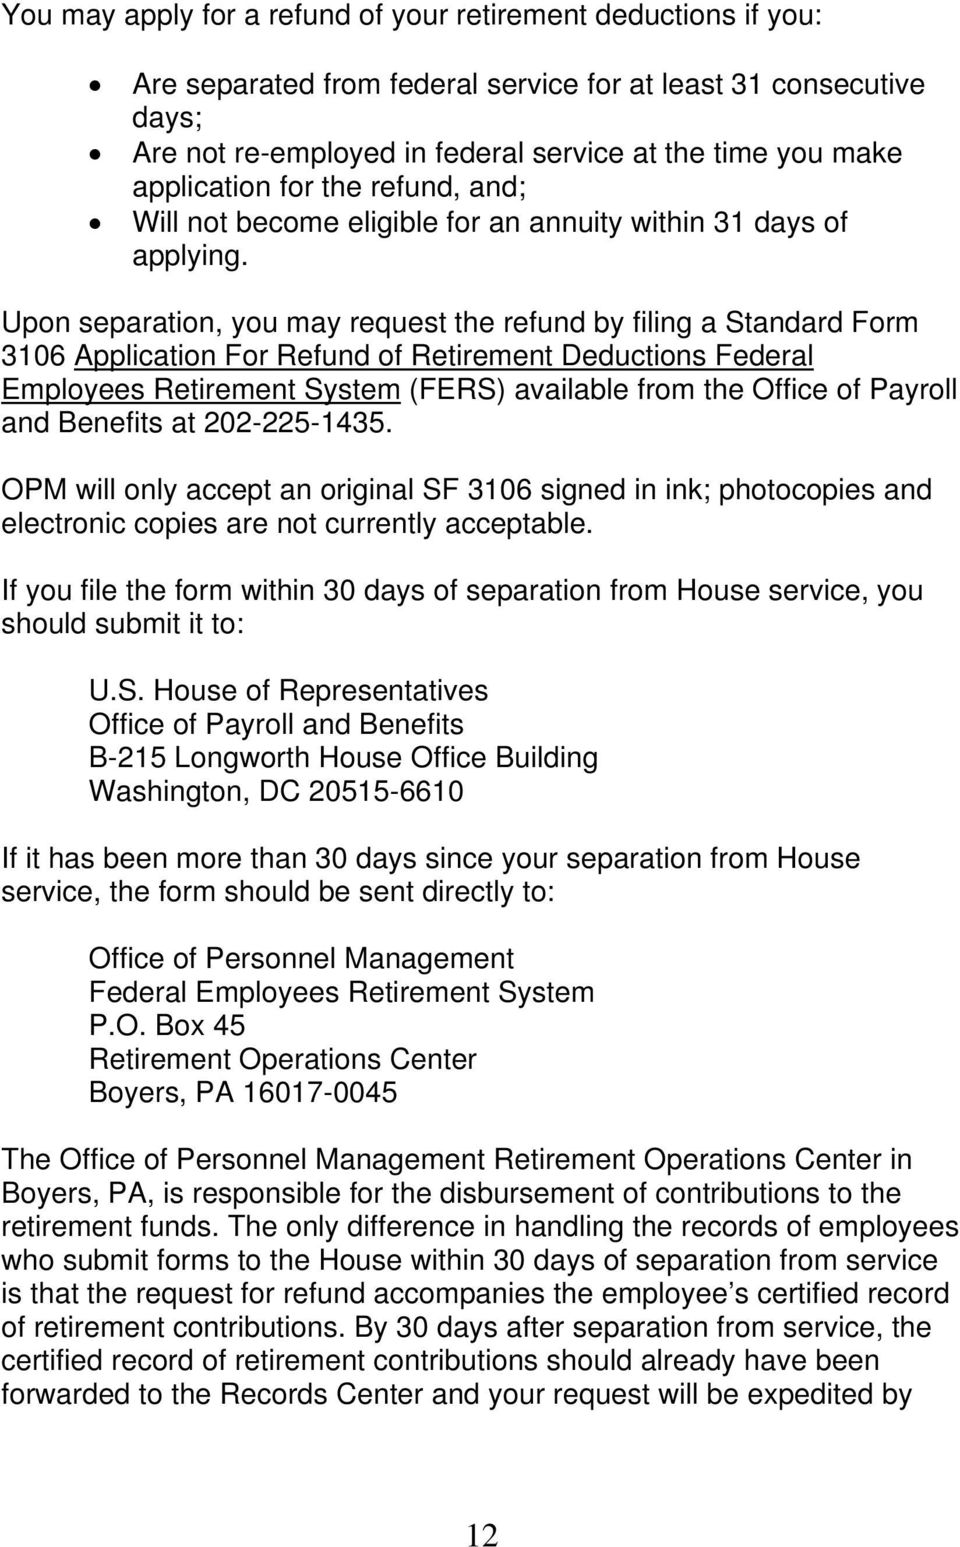 Upon separation, you may request the refund by filing a Standard Form 3106 Application For Refund of Retirement Deductions Federal Employees Retirement System (FERS) available from the Office of